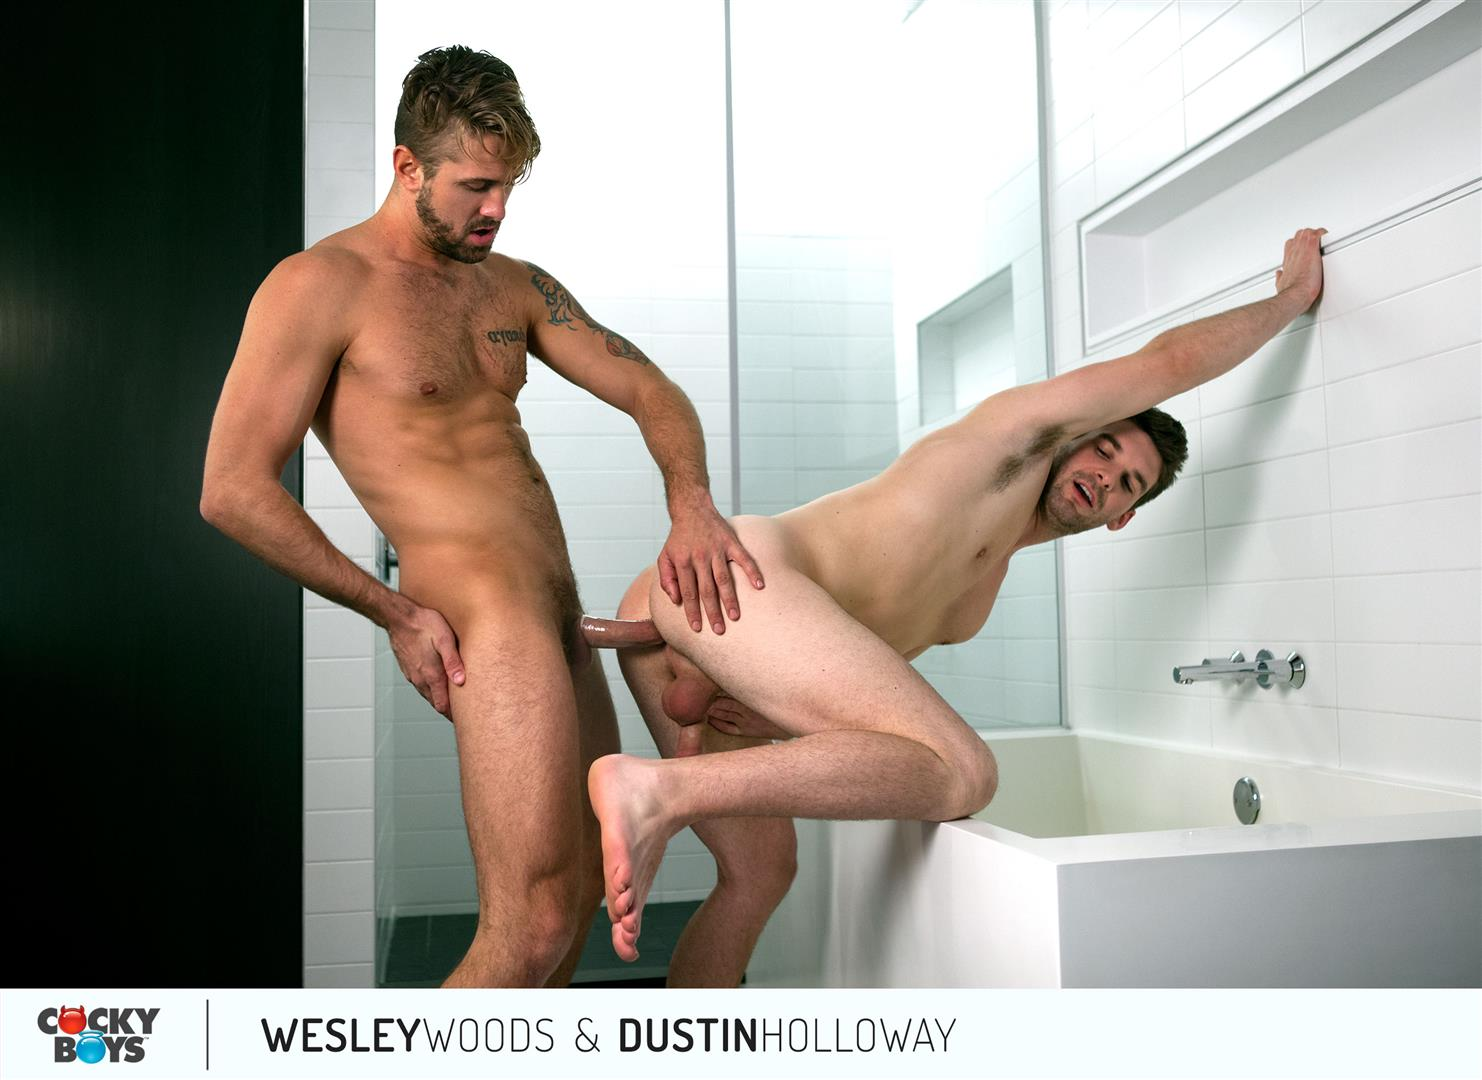 Cockyboys Wesley Woods and Dustin Holloway Hung Hunks Flip Fucking Amateur Gay Porn 24 Cockyboys:  Wesley Woods and Dustin Holloway Flip Flop Fucking